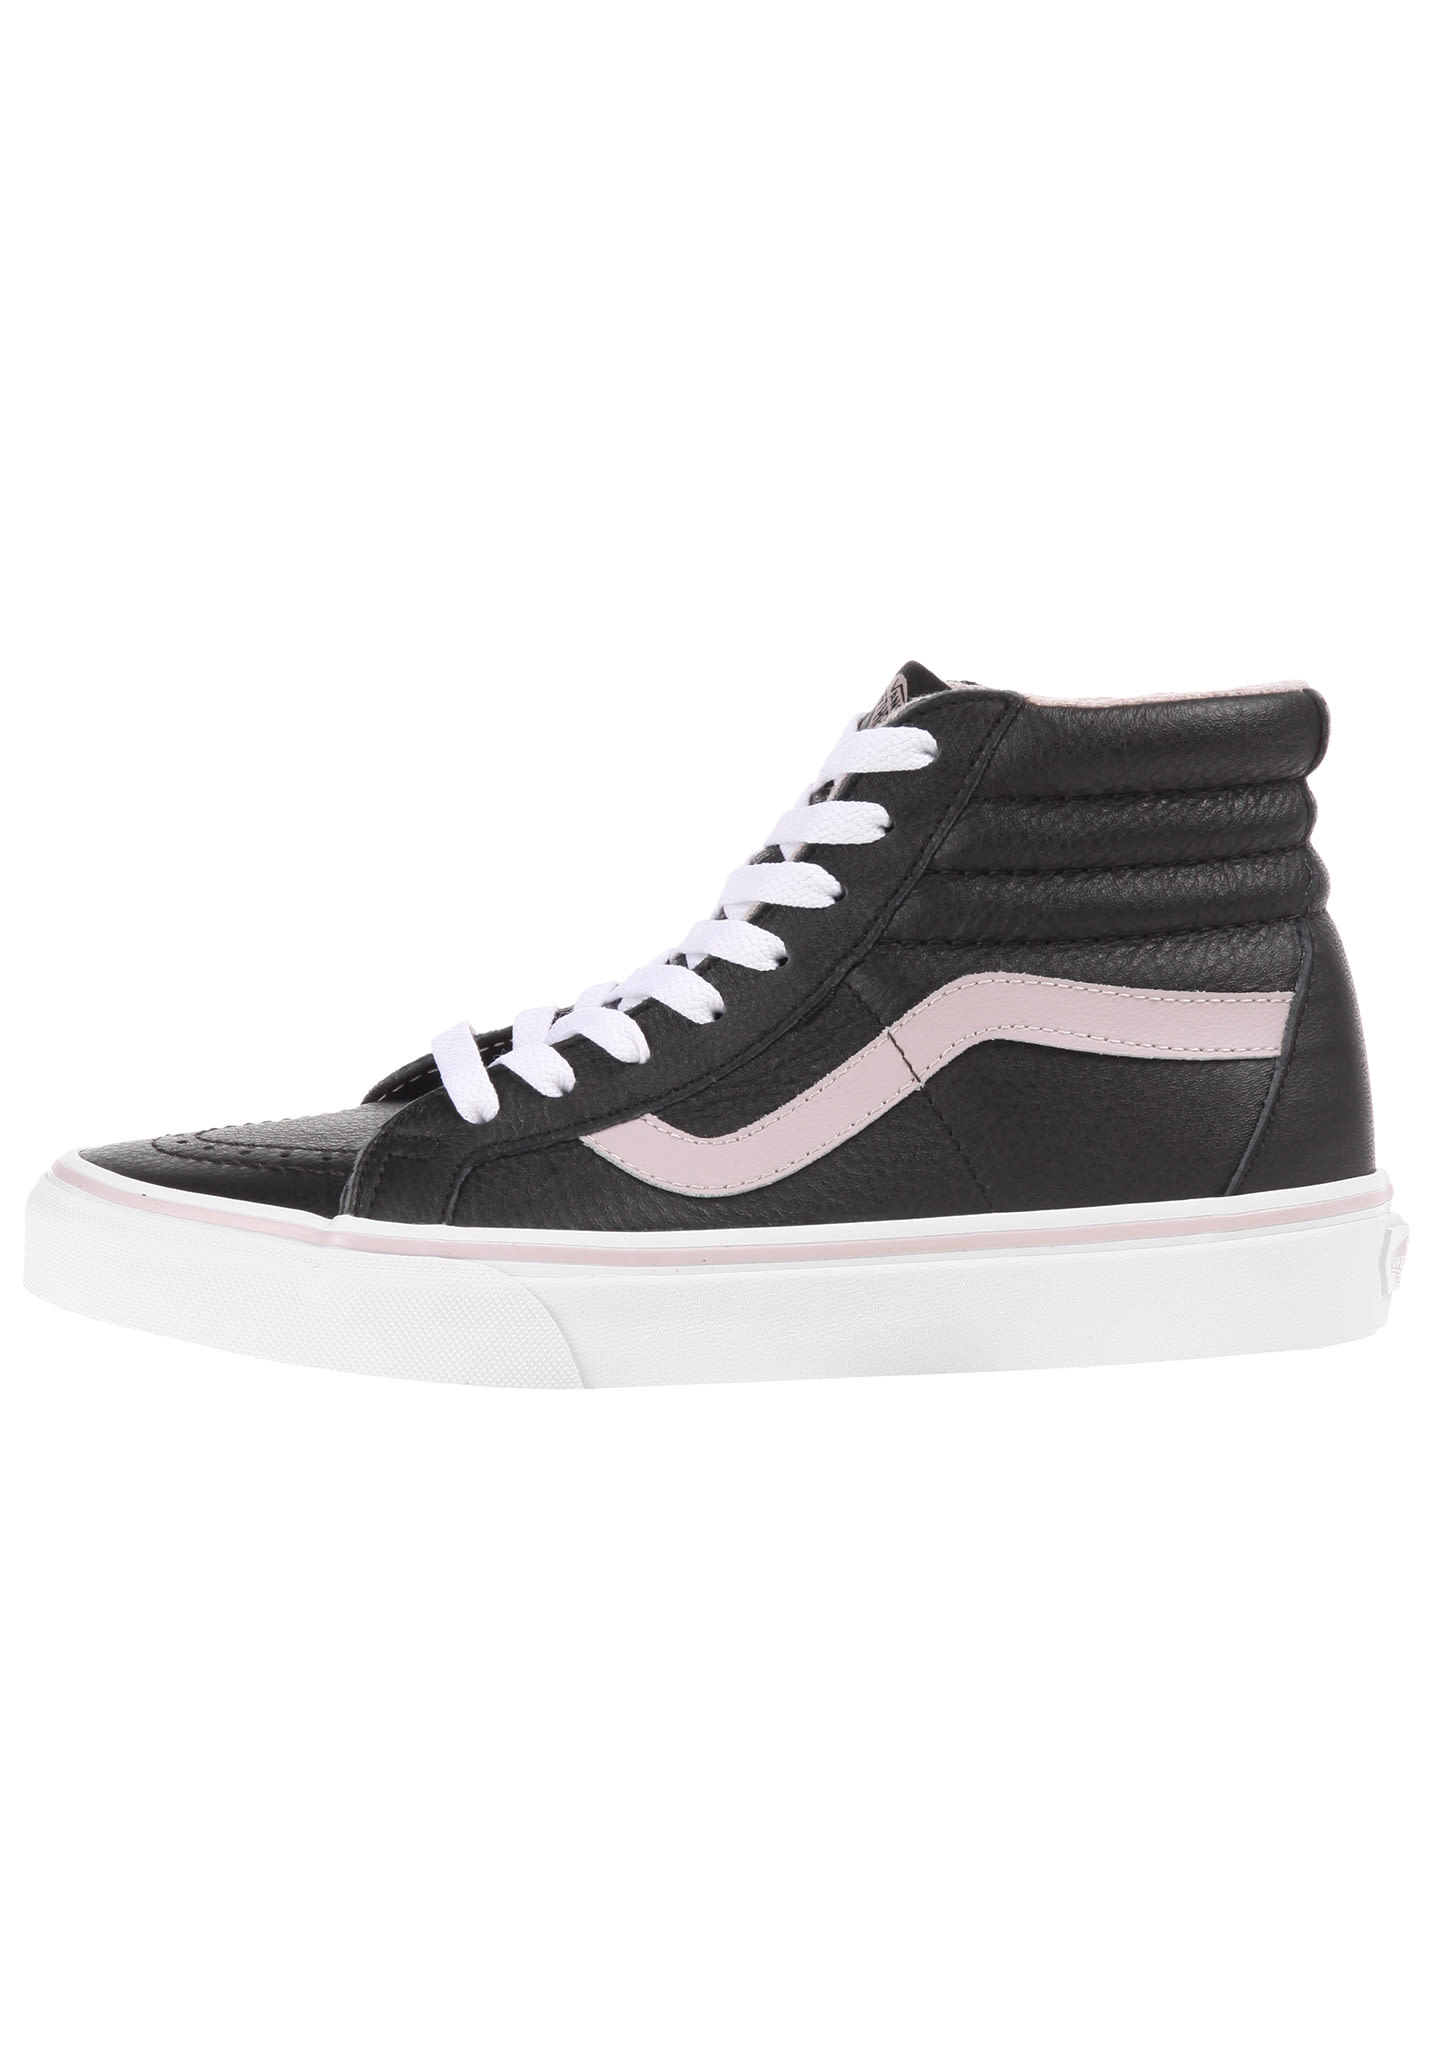 8ad7e7e3e6 Vans Sk8-Hi Reissue - Sneakers for Women - Brown - Planet Sports